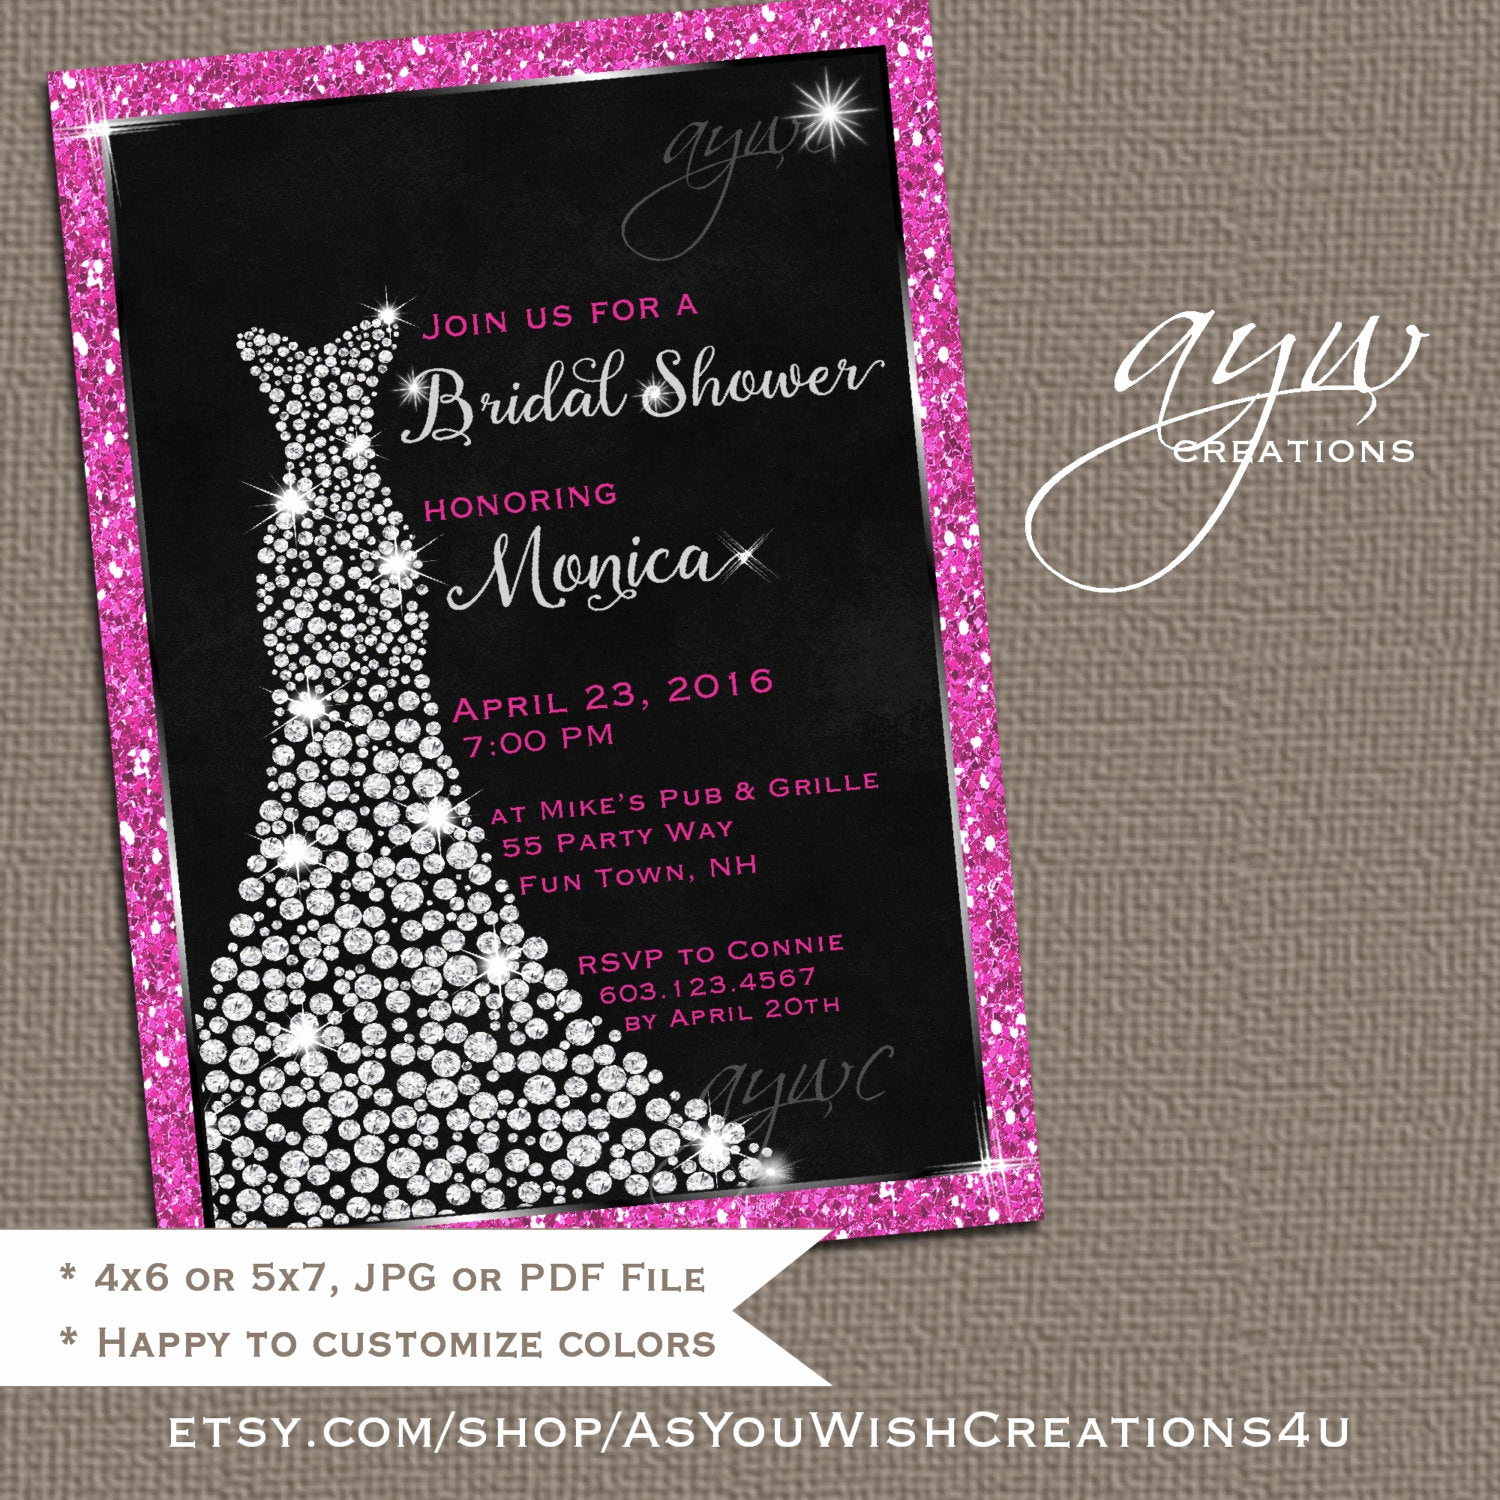 Bridal Shower Invitation Images Lovely Wedding Dress Bridal Shower Invitation Printable Bridal Shower